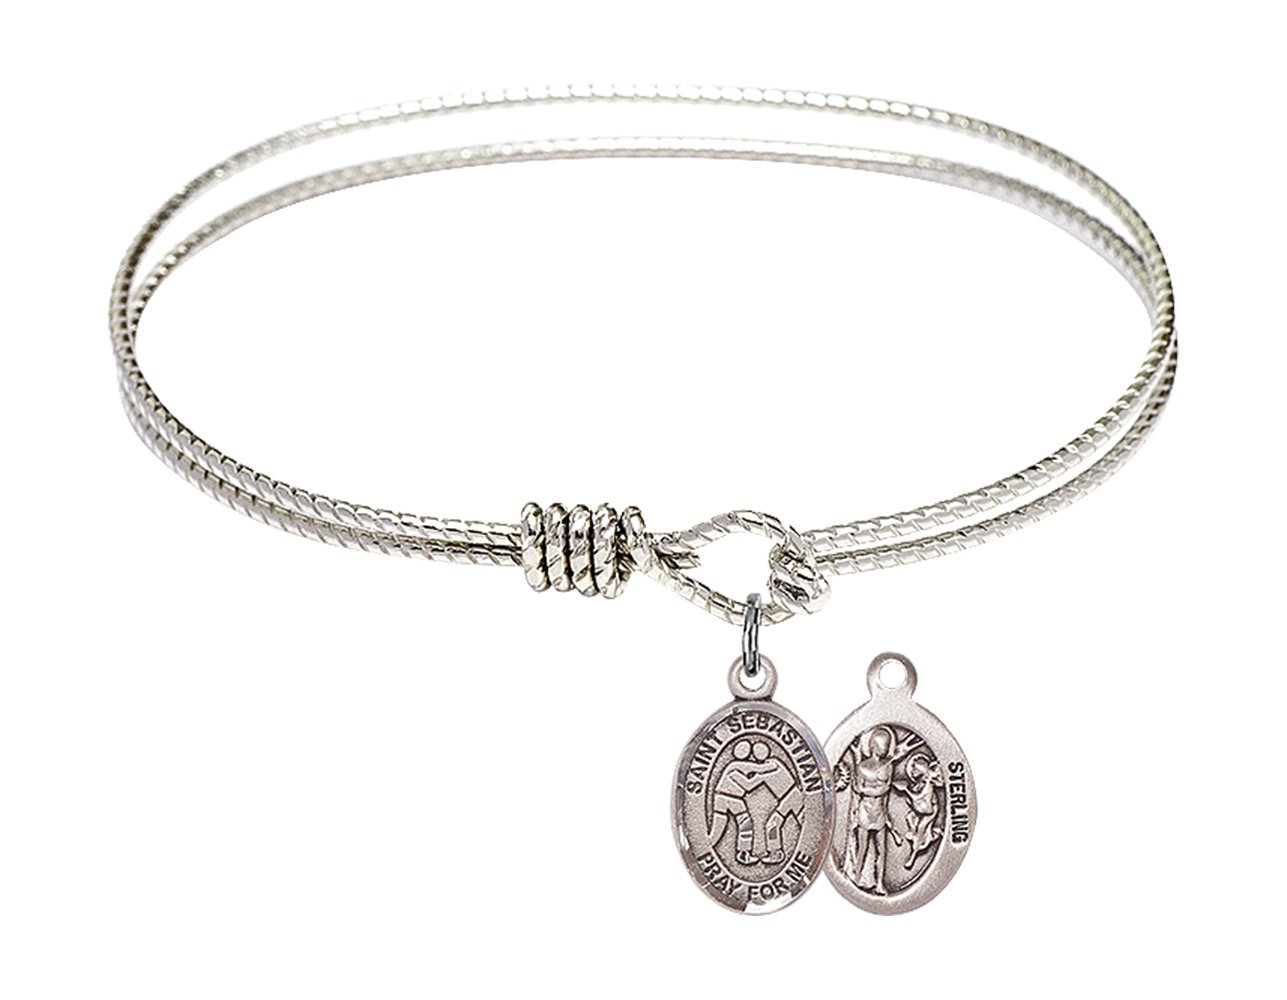 St. Sebastian Wrestling Charm On A 6 1/4 Inch Oval Eye Hook Bangle Bracelet by Catholic Saint Medals